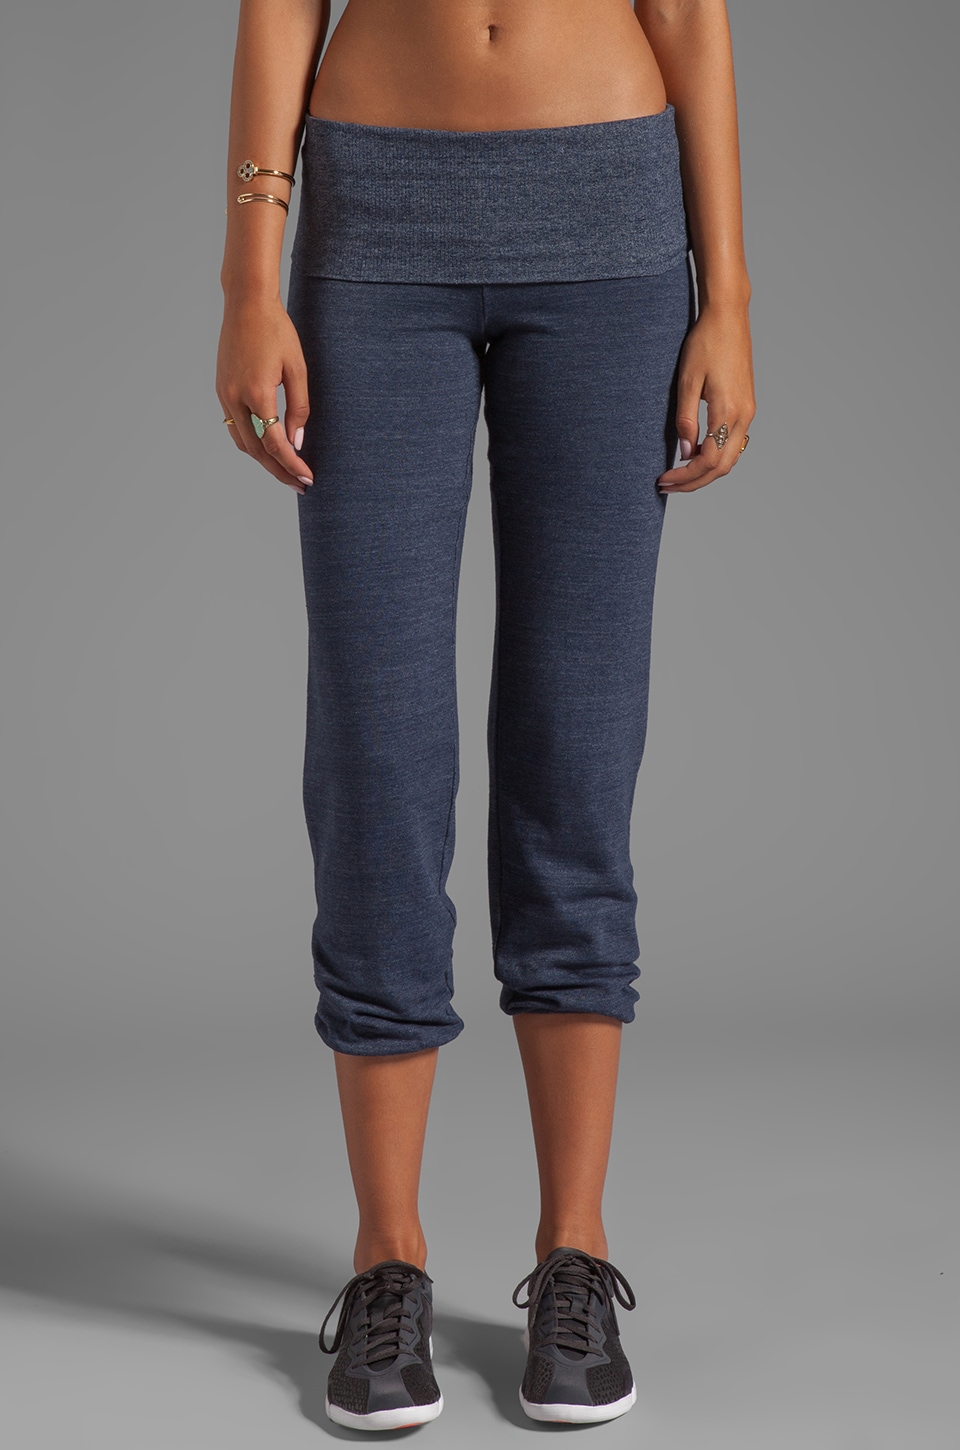 SOLOW Fold Over Dancer's Warm-Up Pant in Navy